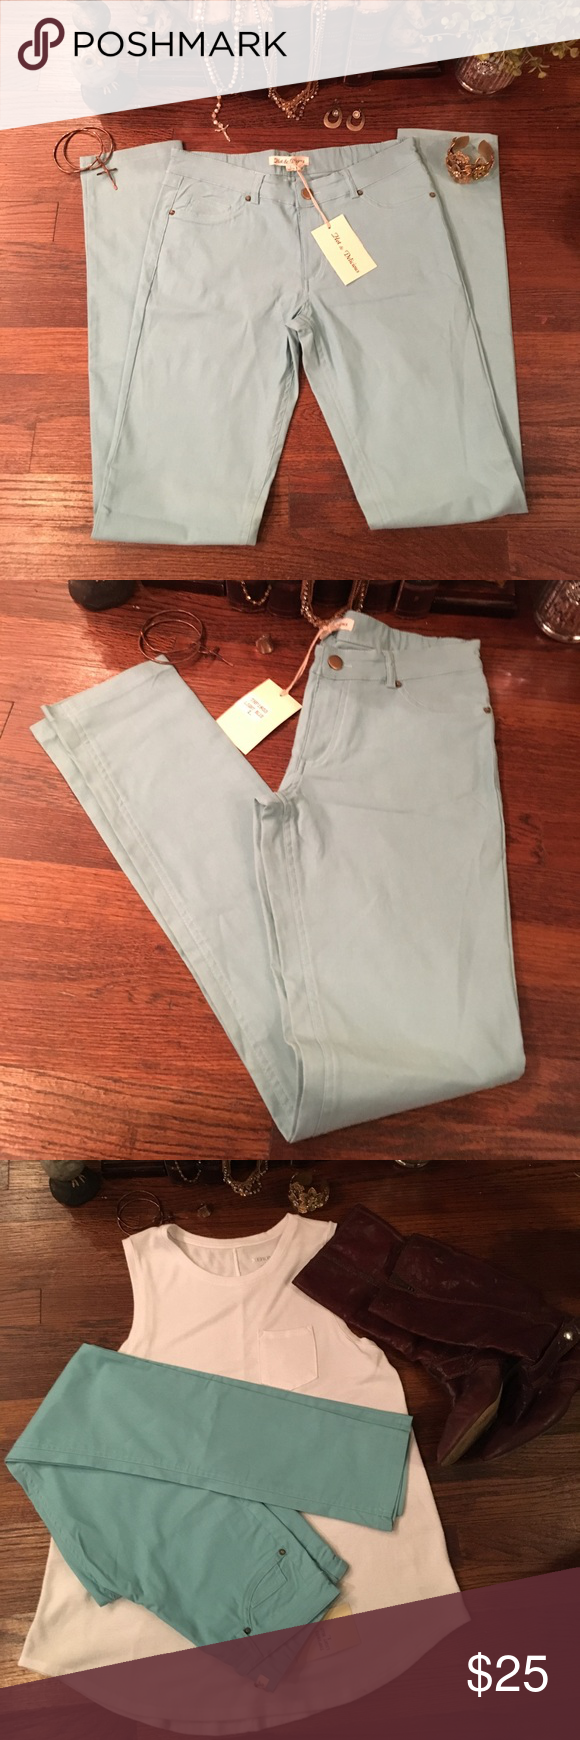 Hot & Delicious Light Blue Skinny NWT Light Blue Hot & Delicious Pants Skinny